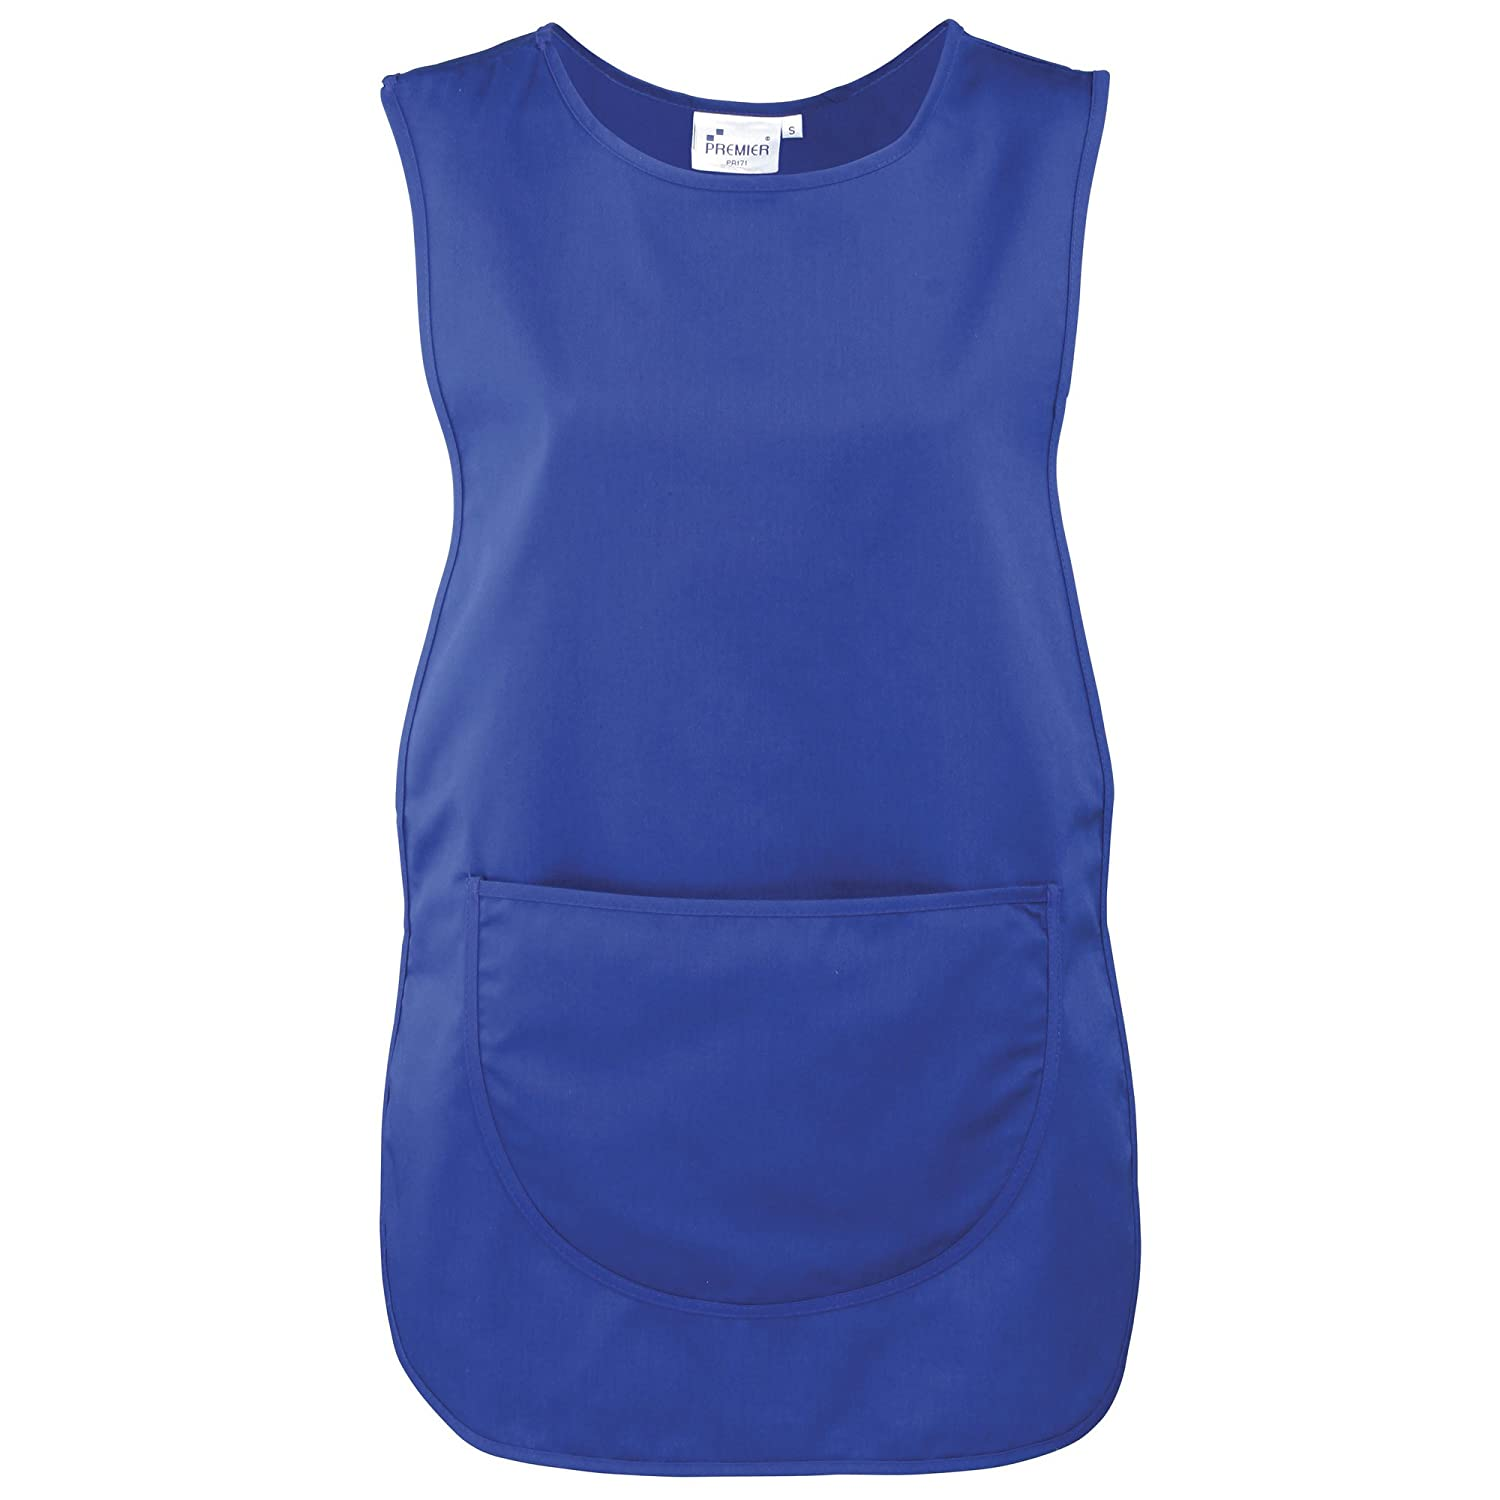 Premier Ladies//Womens Pocket Tabard//Workwear Pack of 2